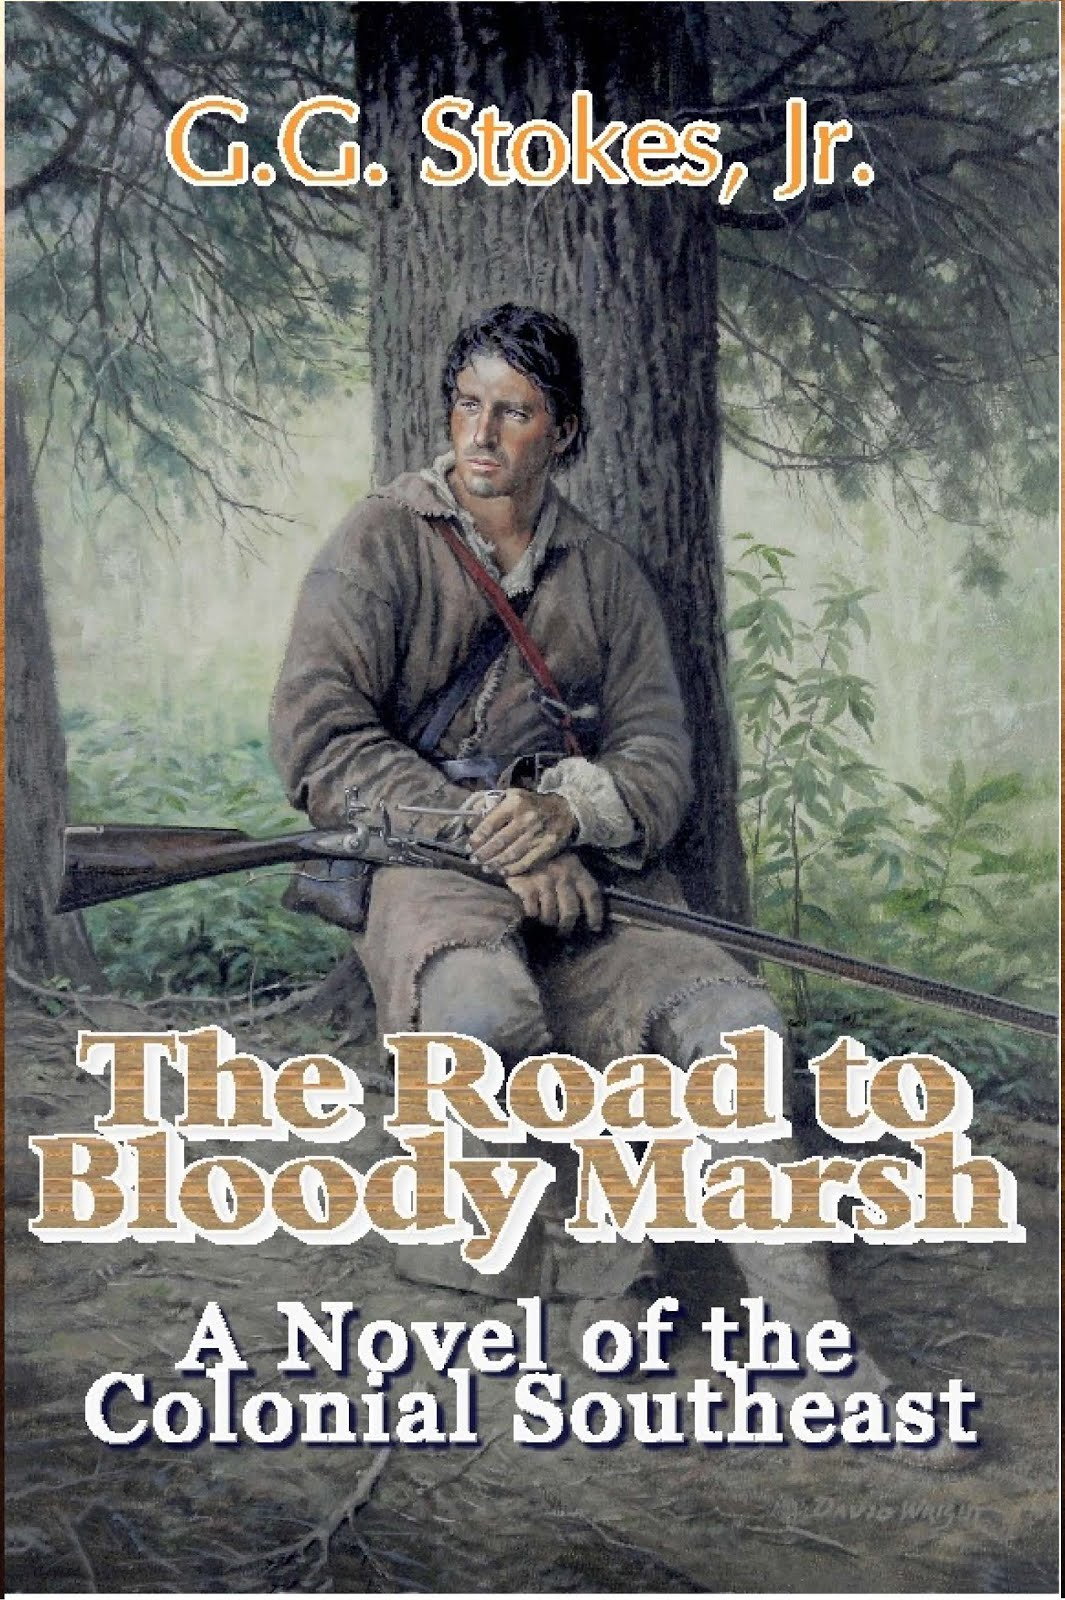 The Road to Bloody Marsh